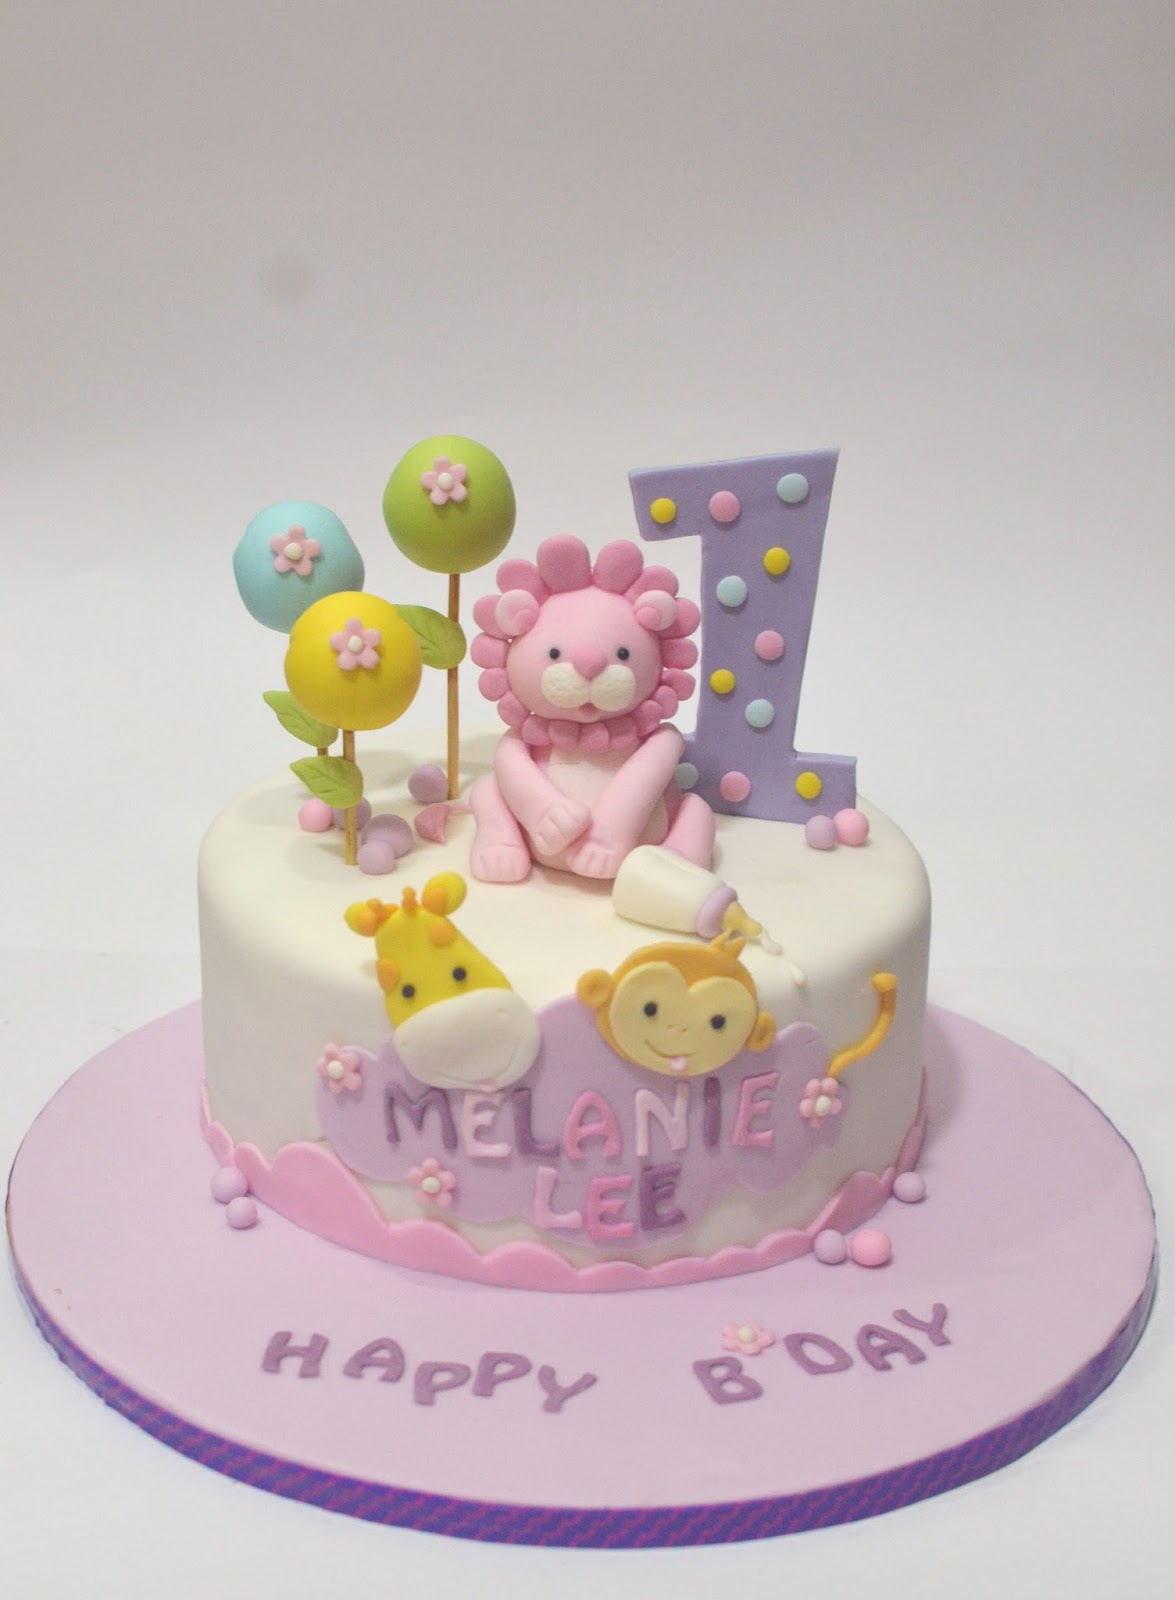 Cute Birthday Cakes Mom And Daughter Cakes Cute Safari Animals Cake For One Year Old